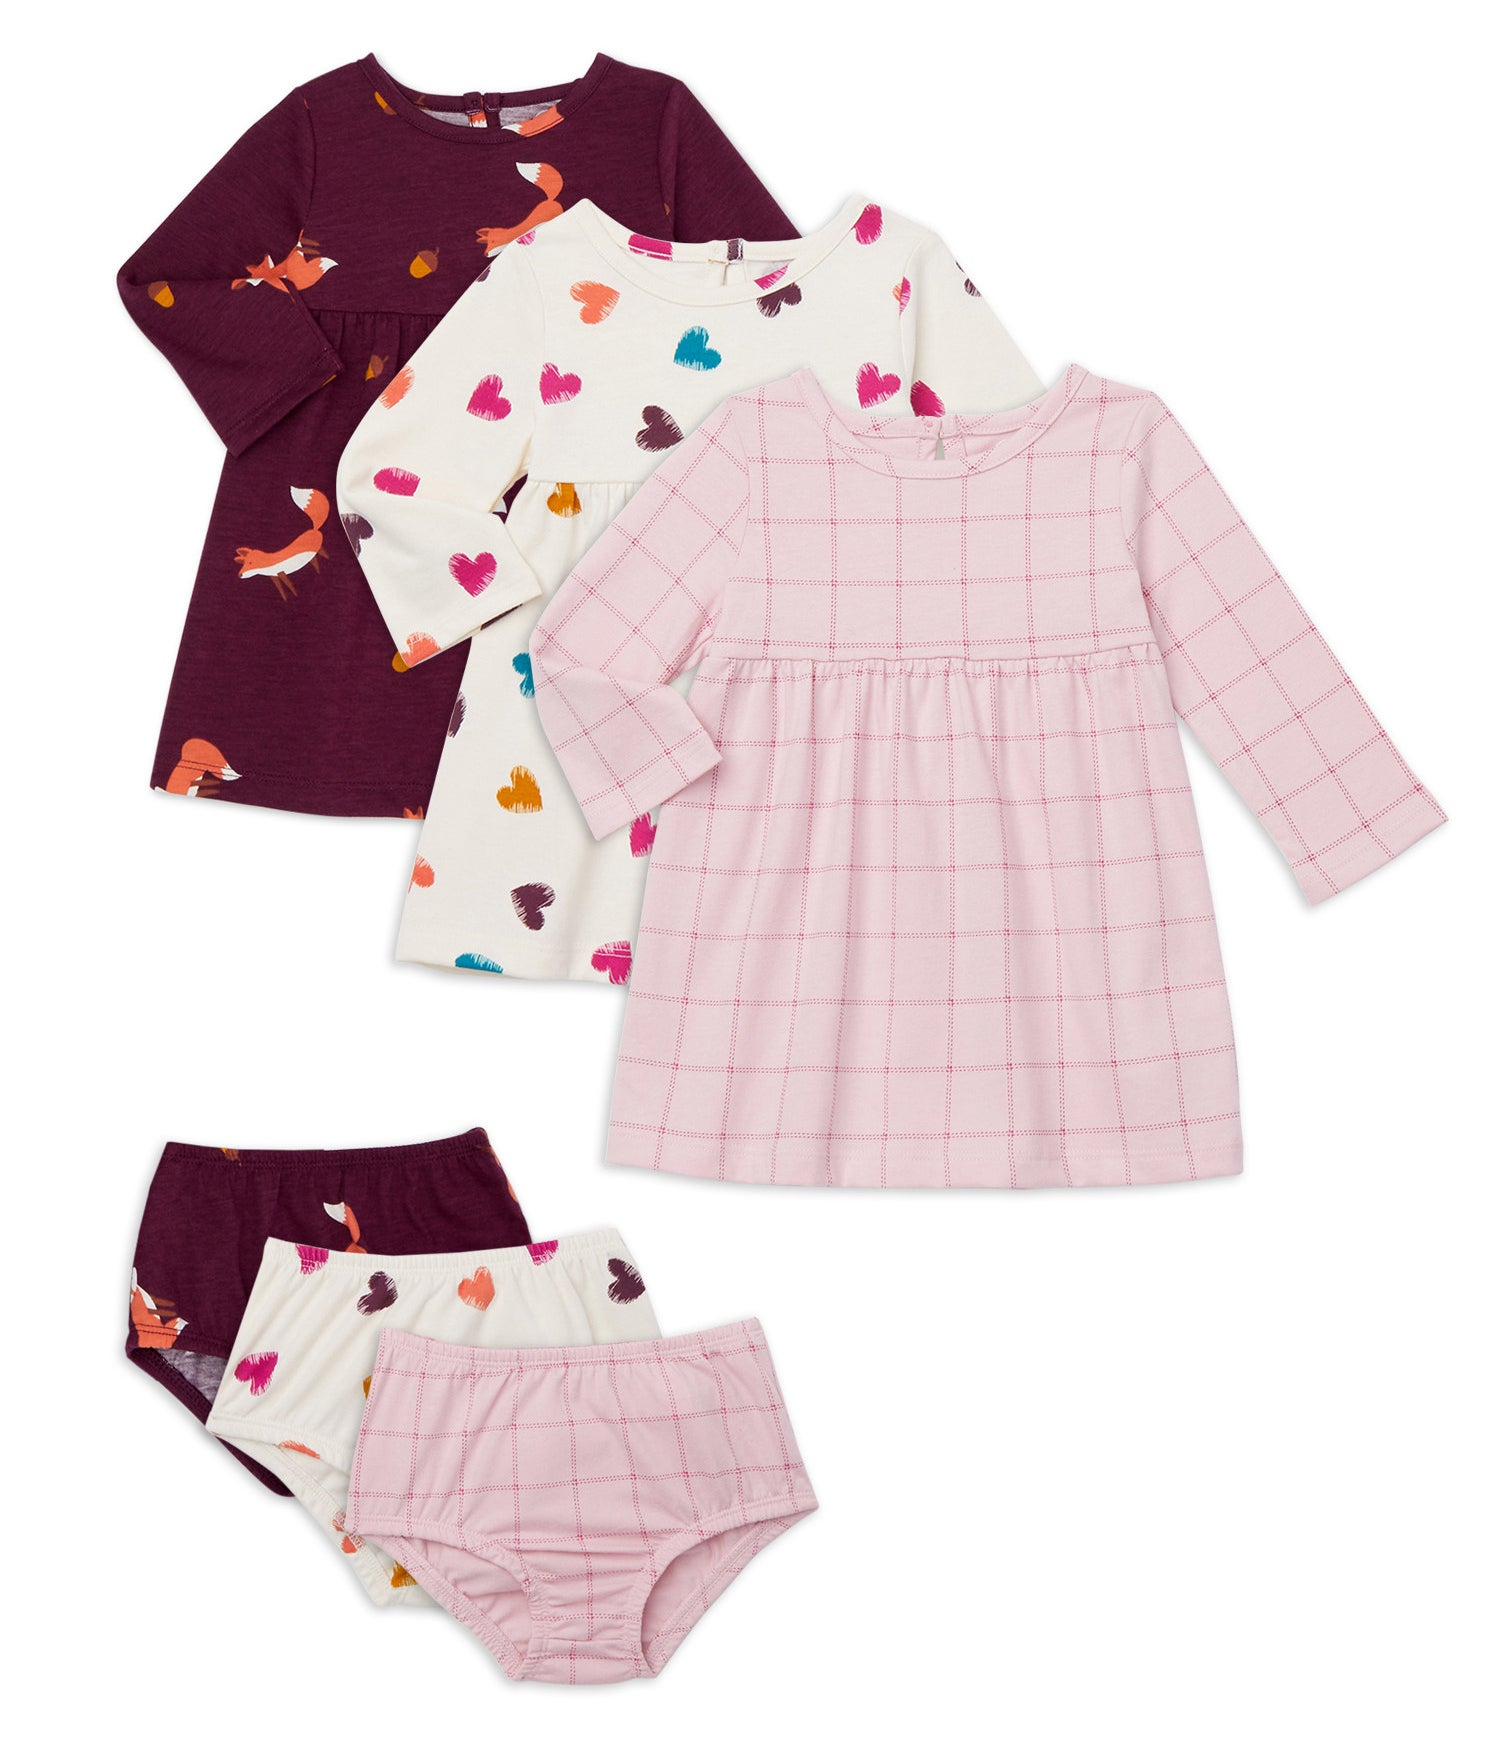 a set of three long-sleeve baby dresses with matching diaper covers